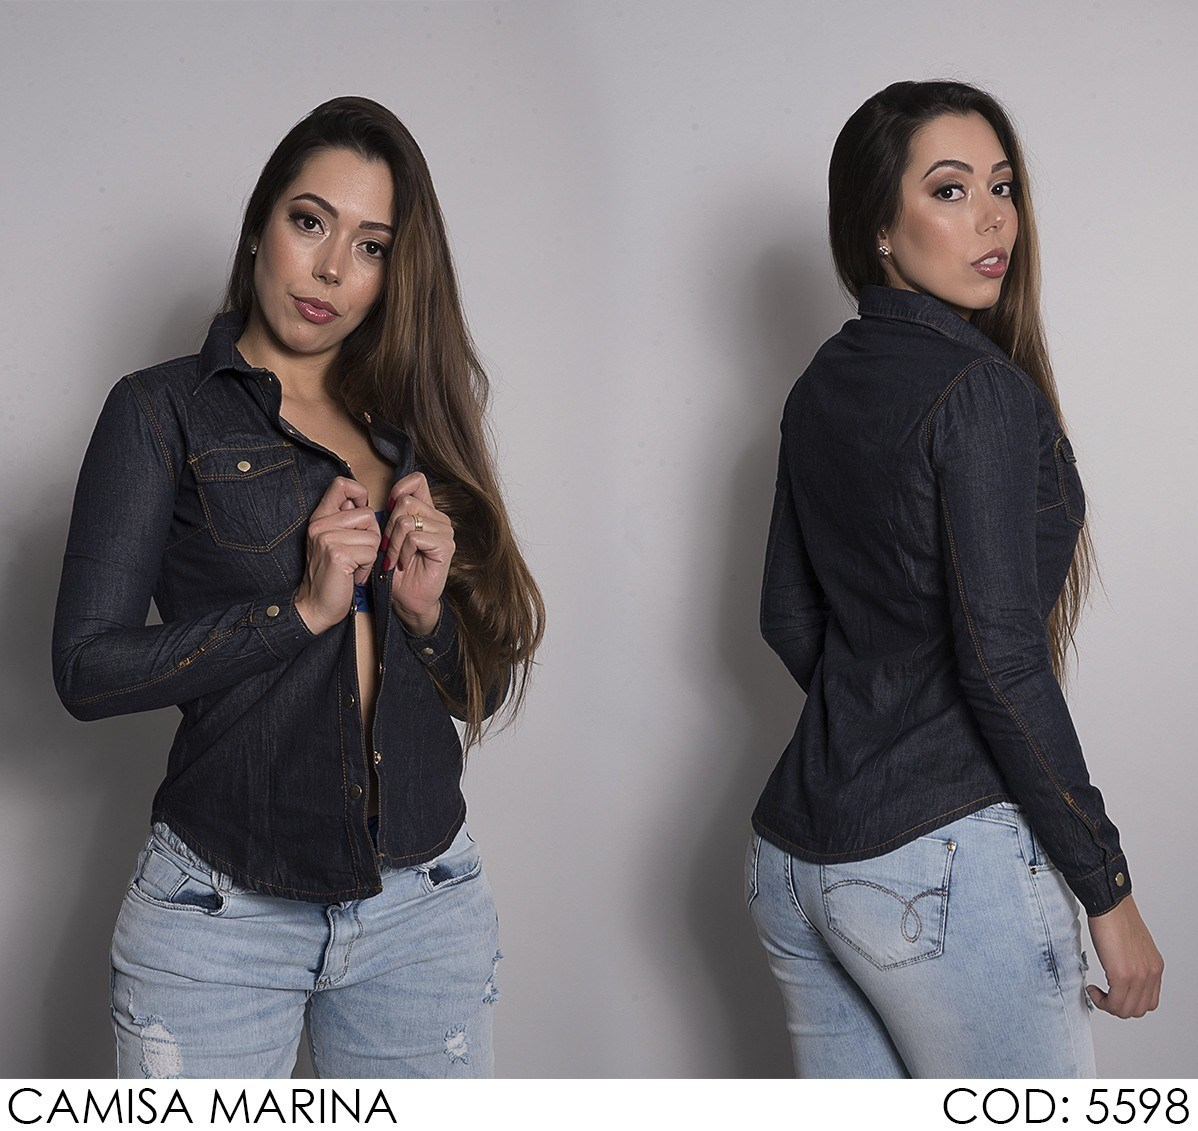 Camisa Darlook Marina [5598]